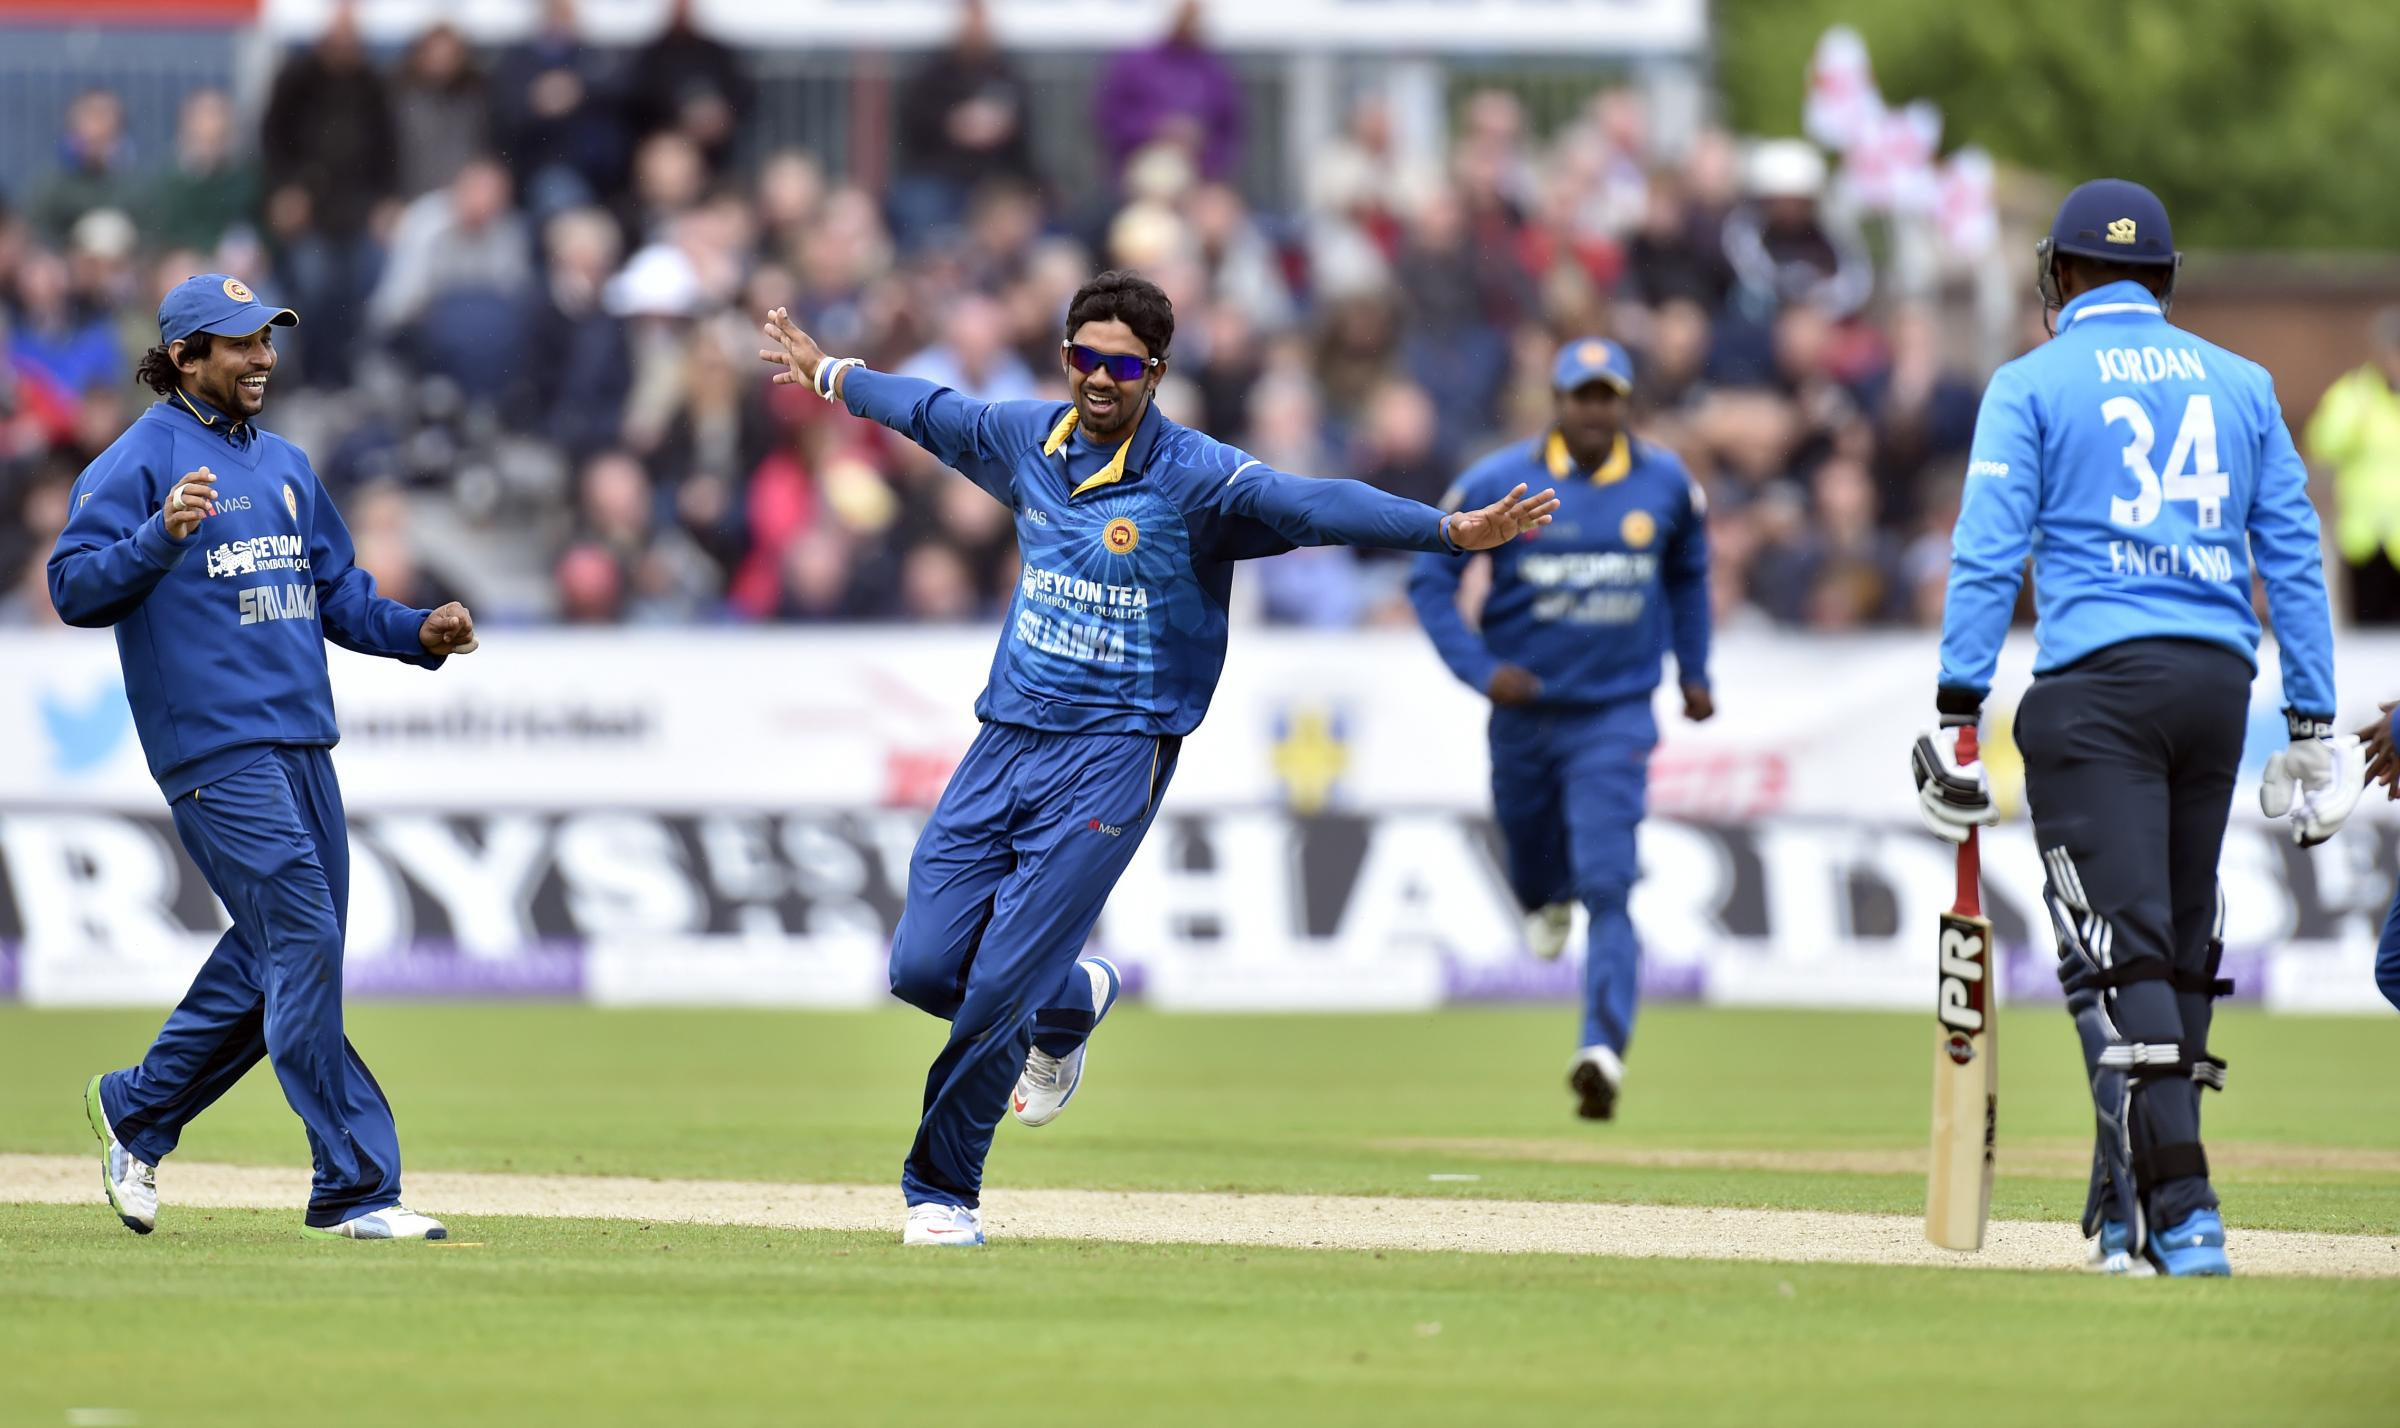 England humiliated as Sri Lanka record resounding win at Chester-le-Street